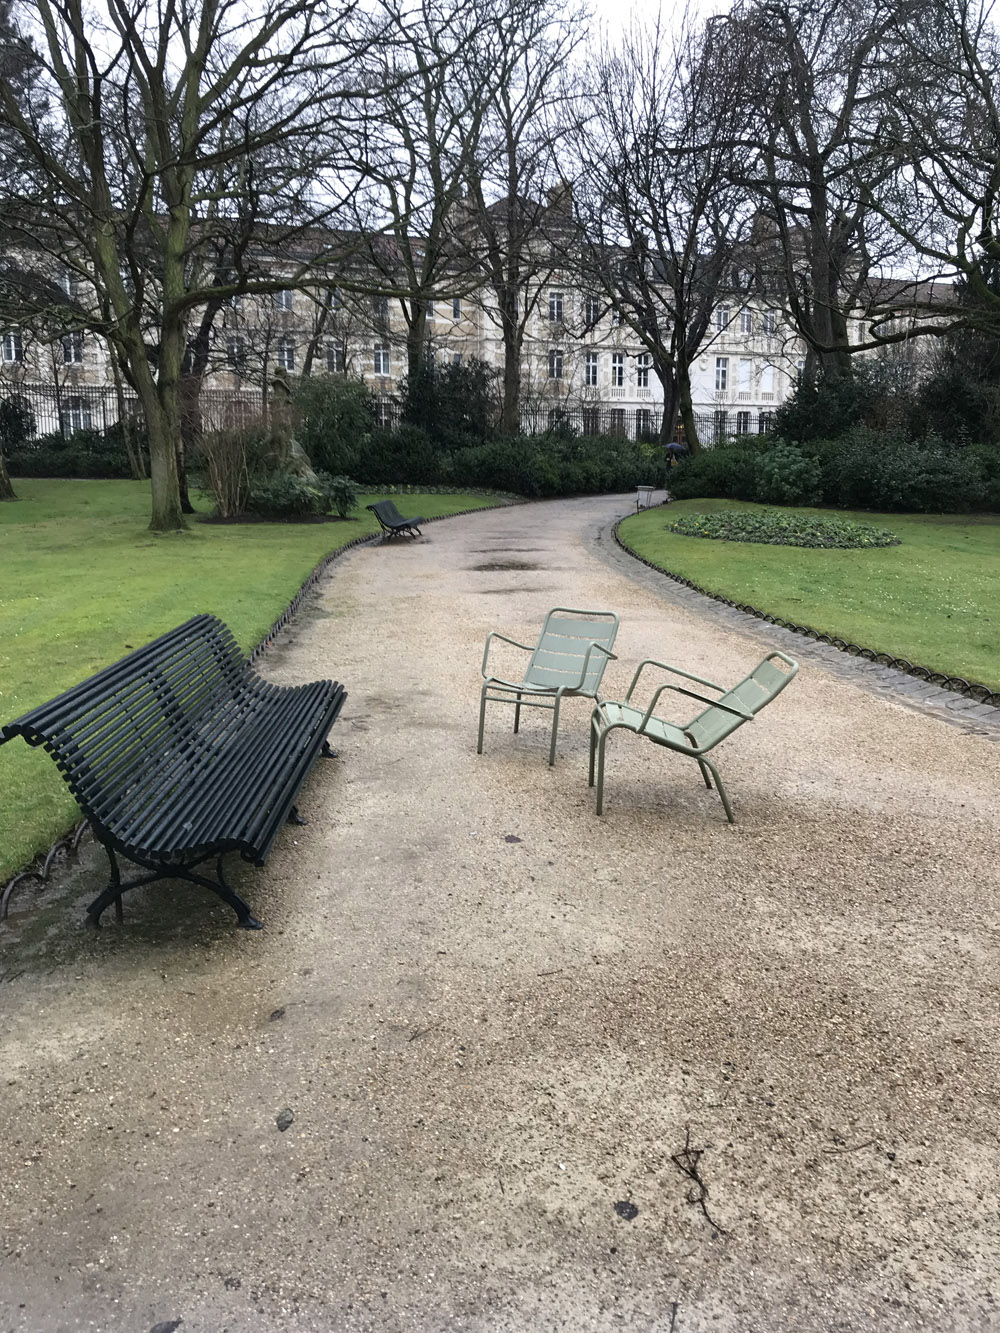 benches-jardin-du-luxembourg-paris-france-alicia-drake